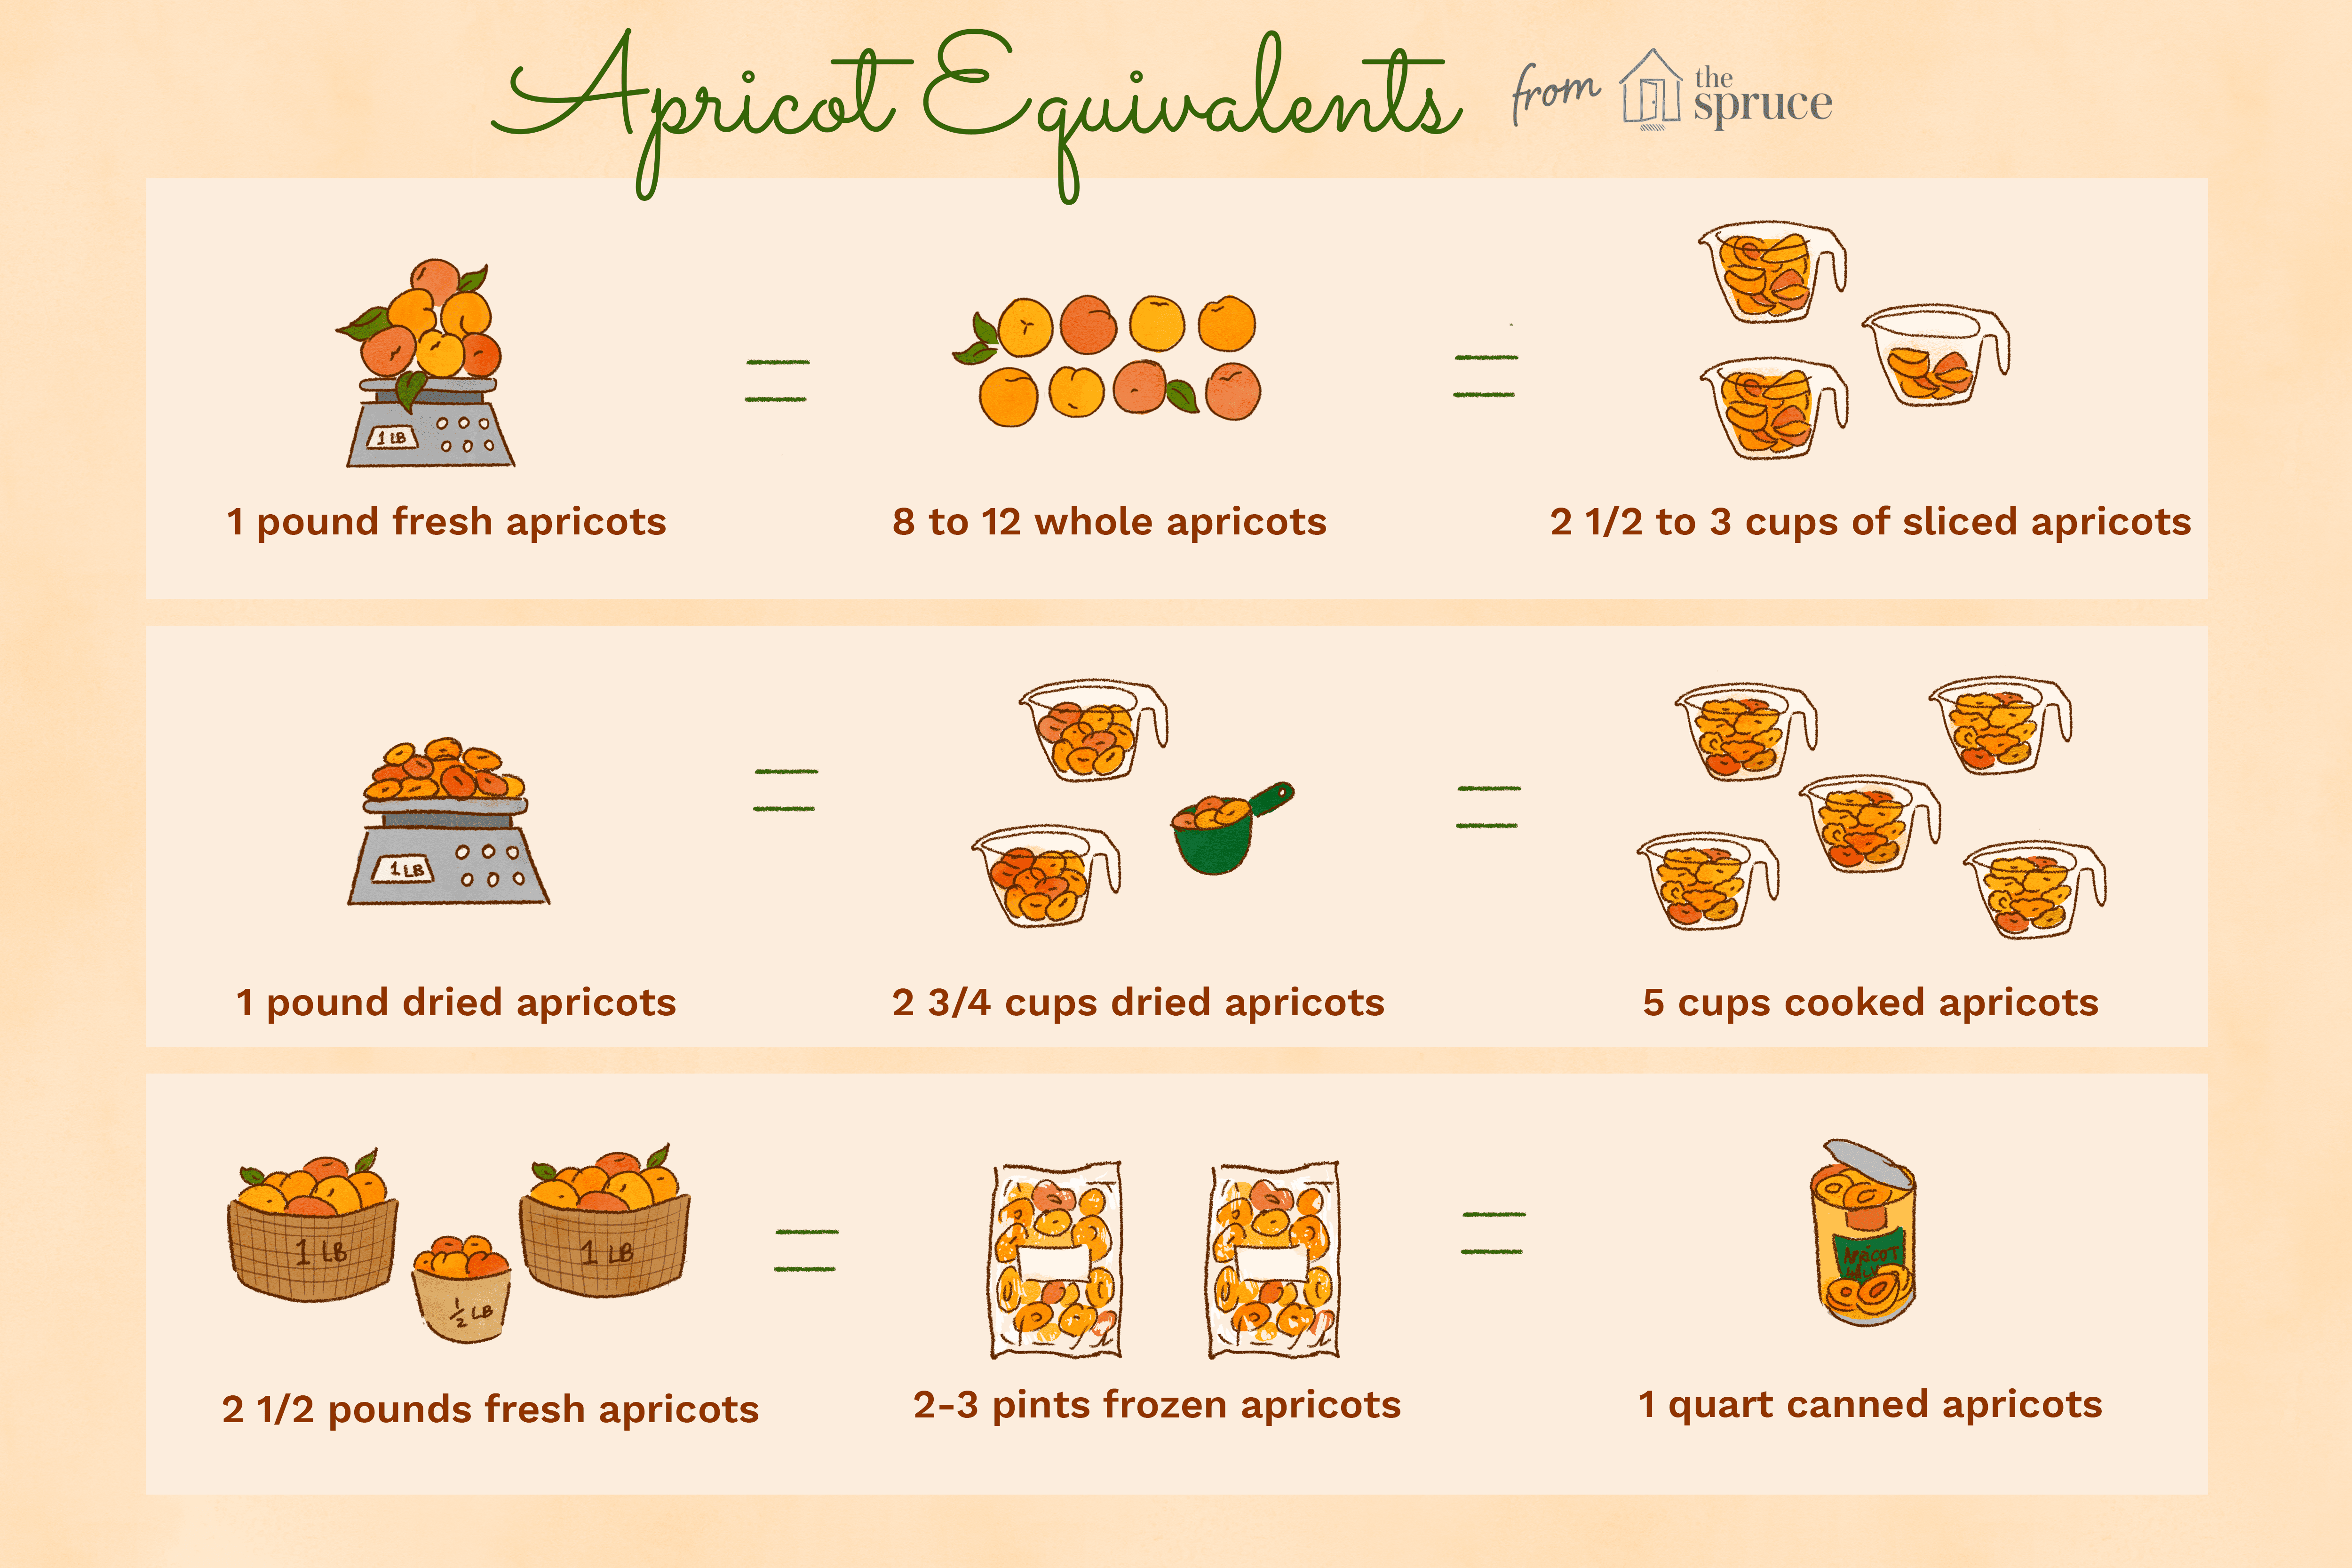 illustration that shows apricot equivalents